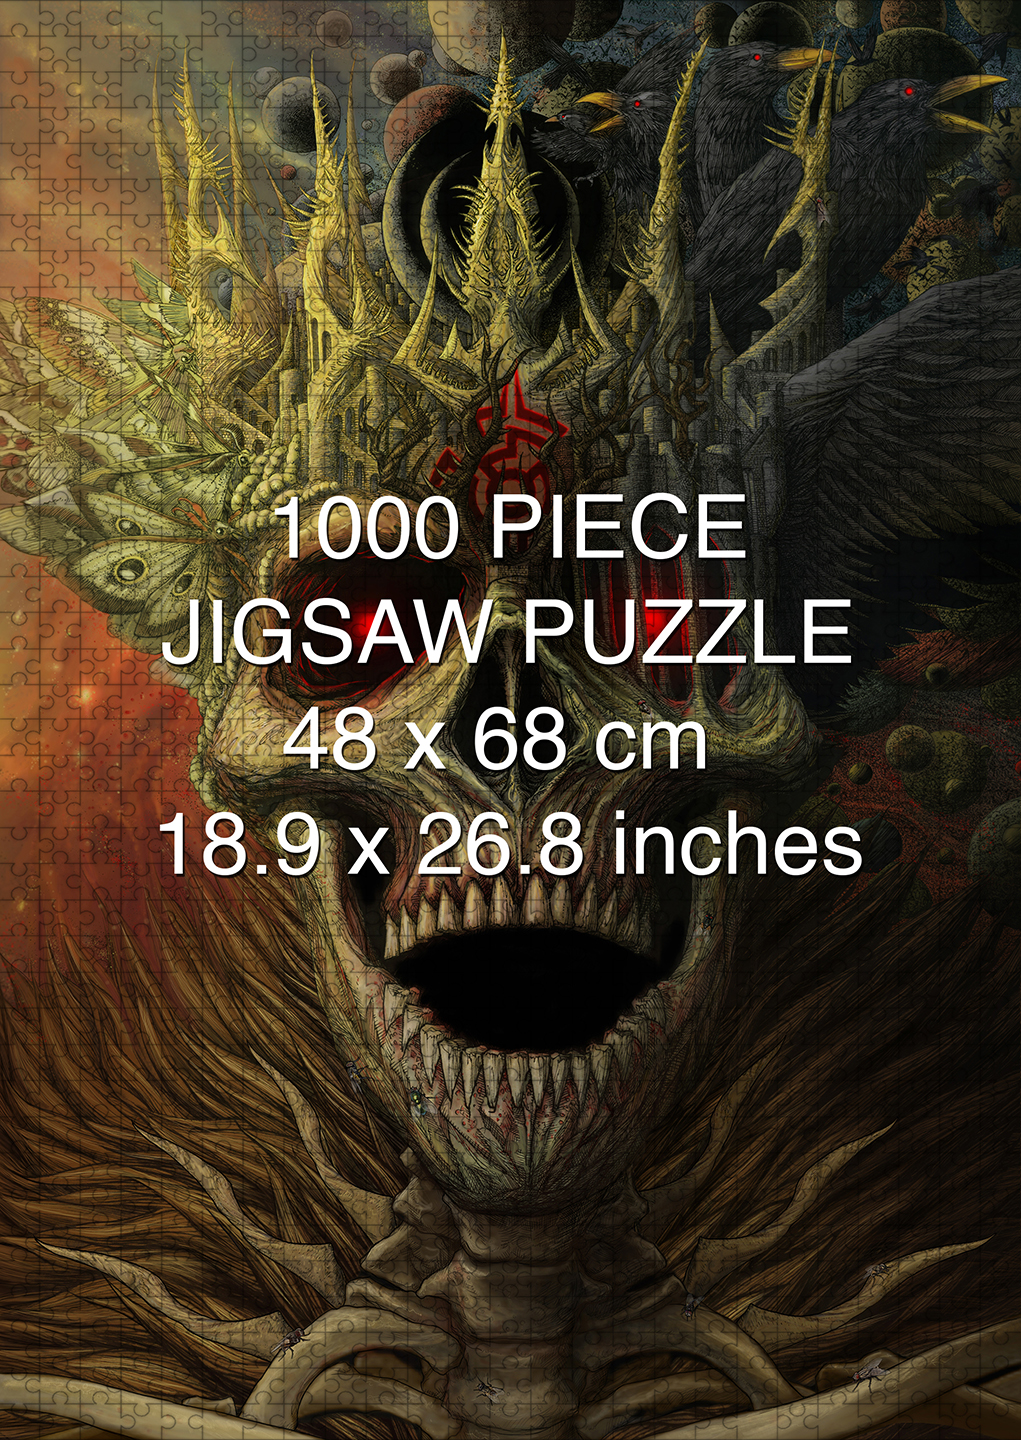 King of the Dead 1000 piece puzzle by Aaron Wolf and Pandemic Puzzles